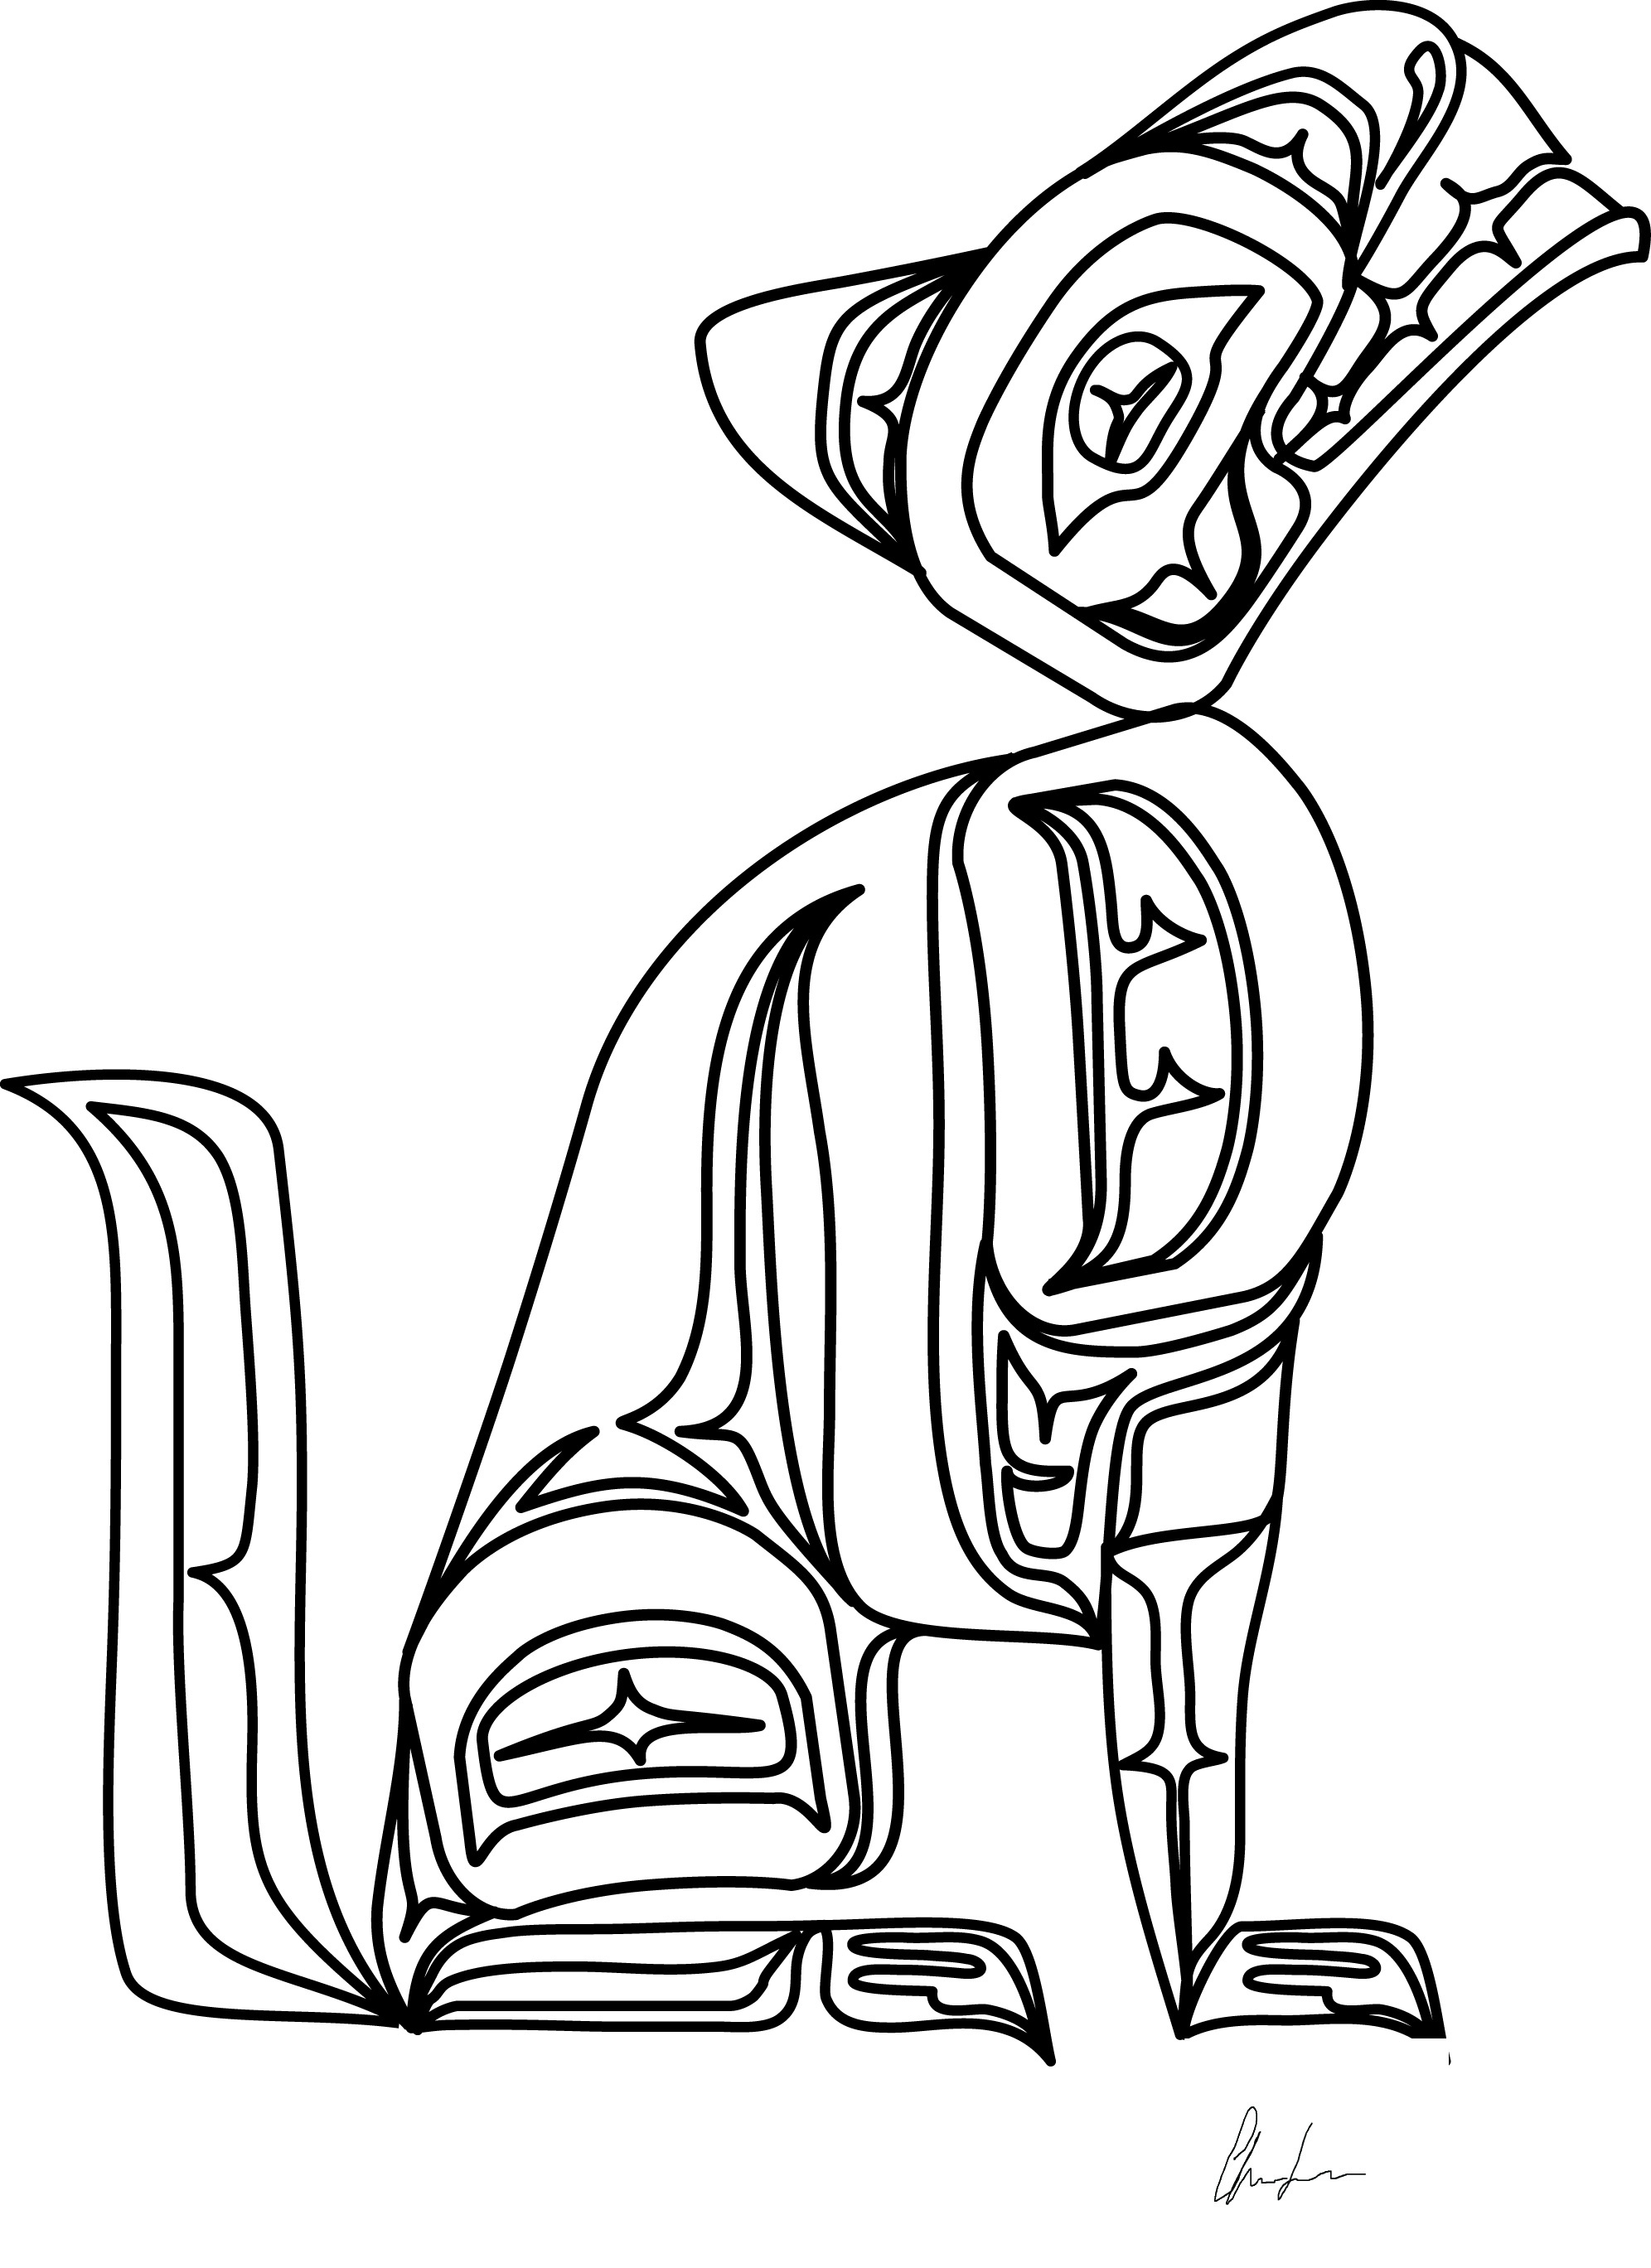 1992x2737 Awesome Health And Fitness Coloring Page Wolf Cub Achievement